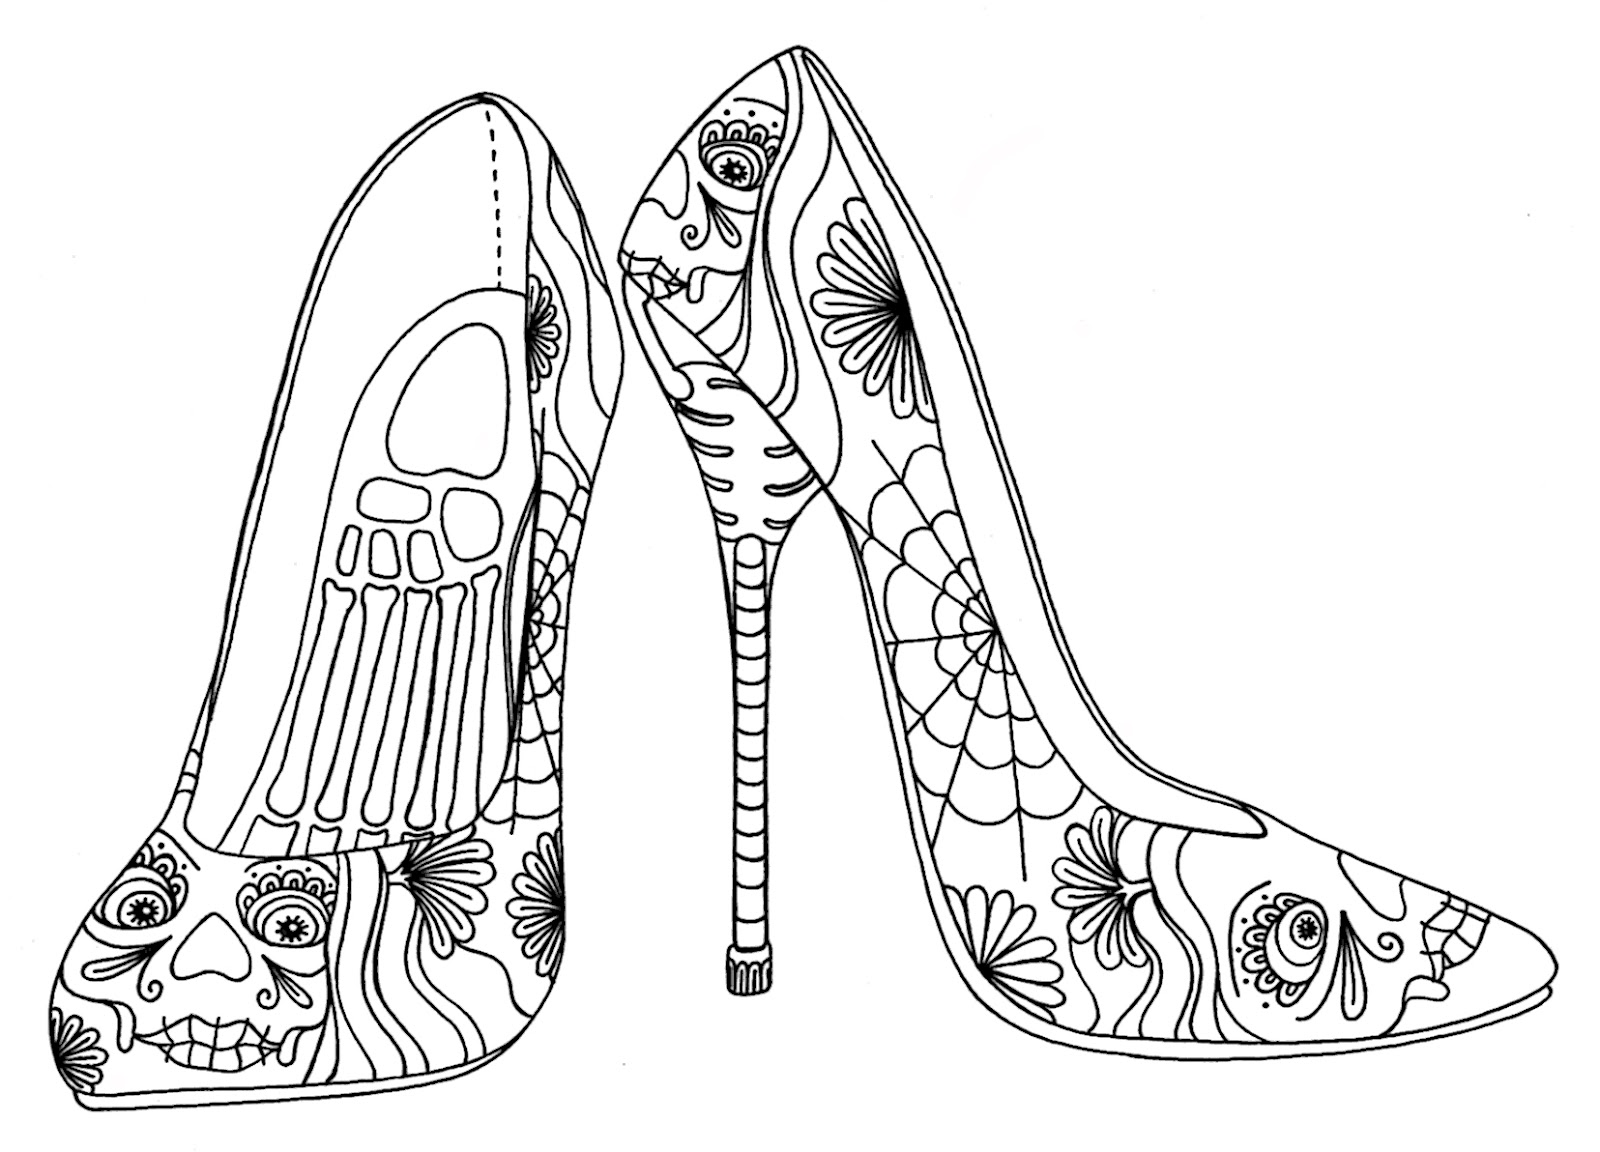 coloring pages for adults shoes amazoncom shoes for walking 30 beautiful shoe designs shoes pages adults coloring for